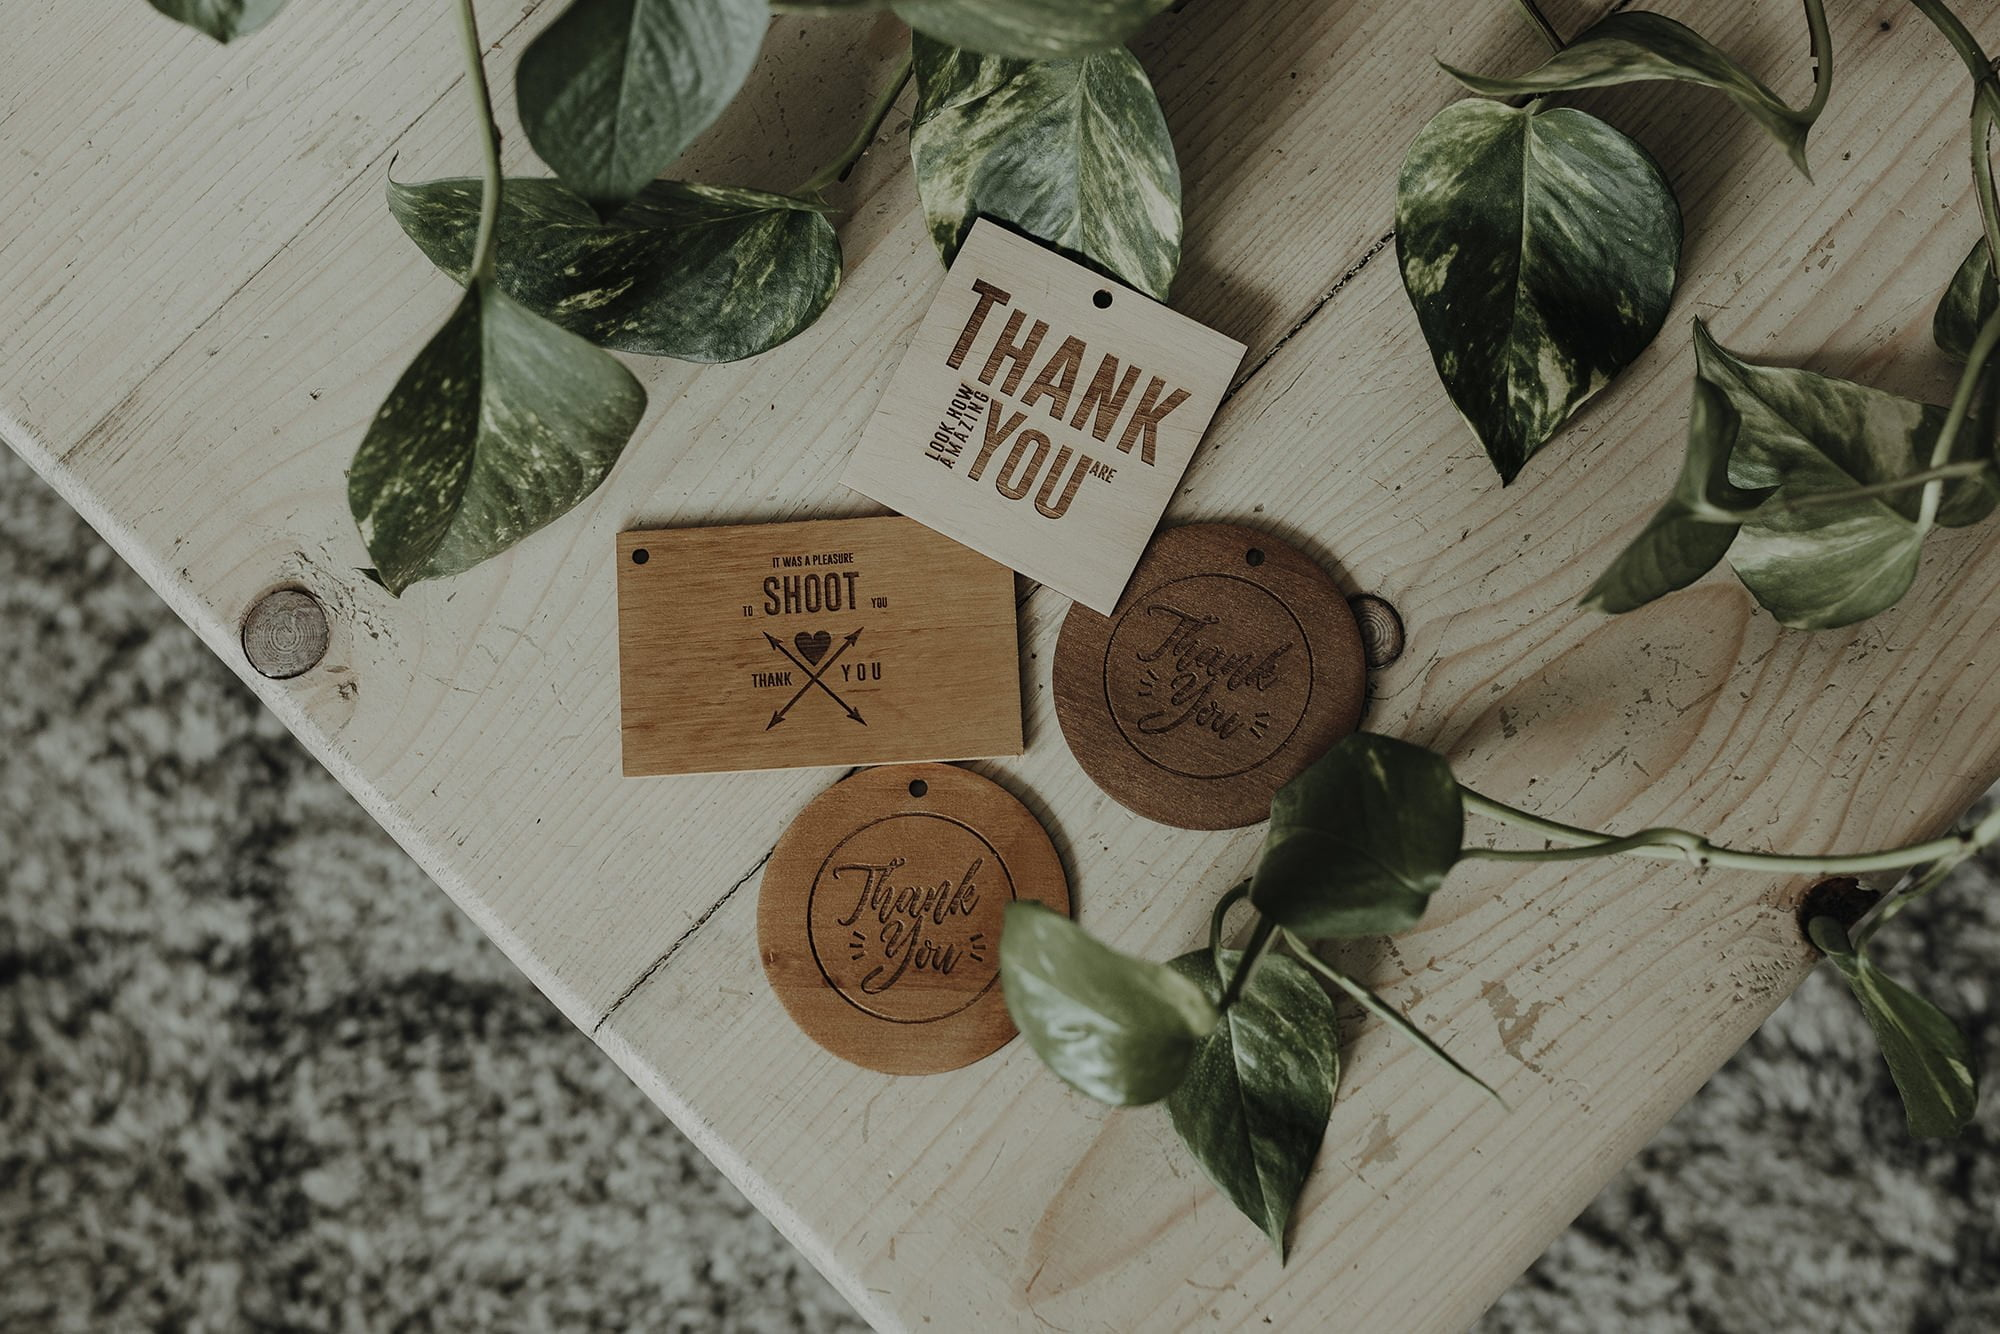 3 simple ways to make your photography packaging extra personal. 1